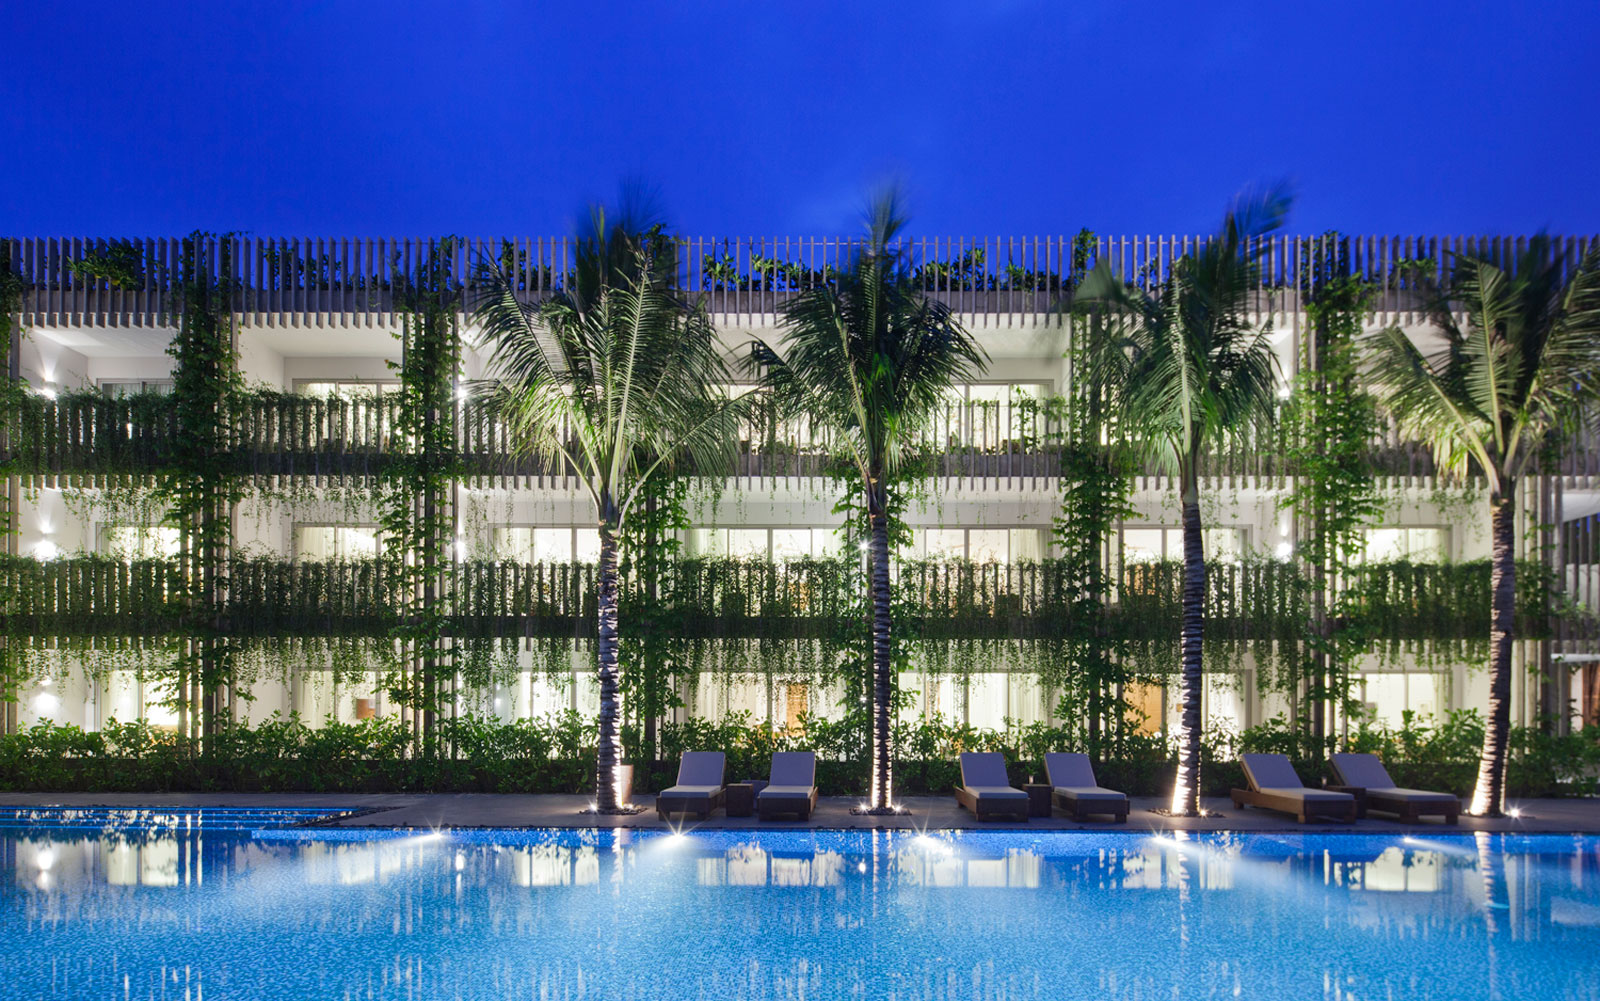 Architects Transformed the Walls of This Resort in Vietnam into a Hanging Jungle: Naman Retreat, Da Nang, Vietnam